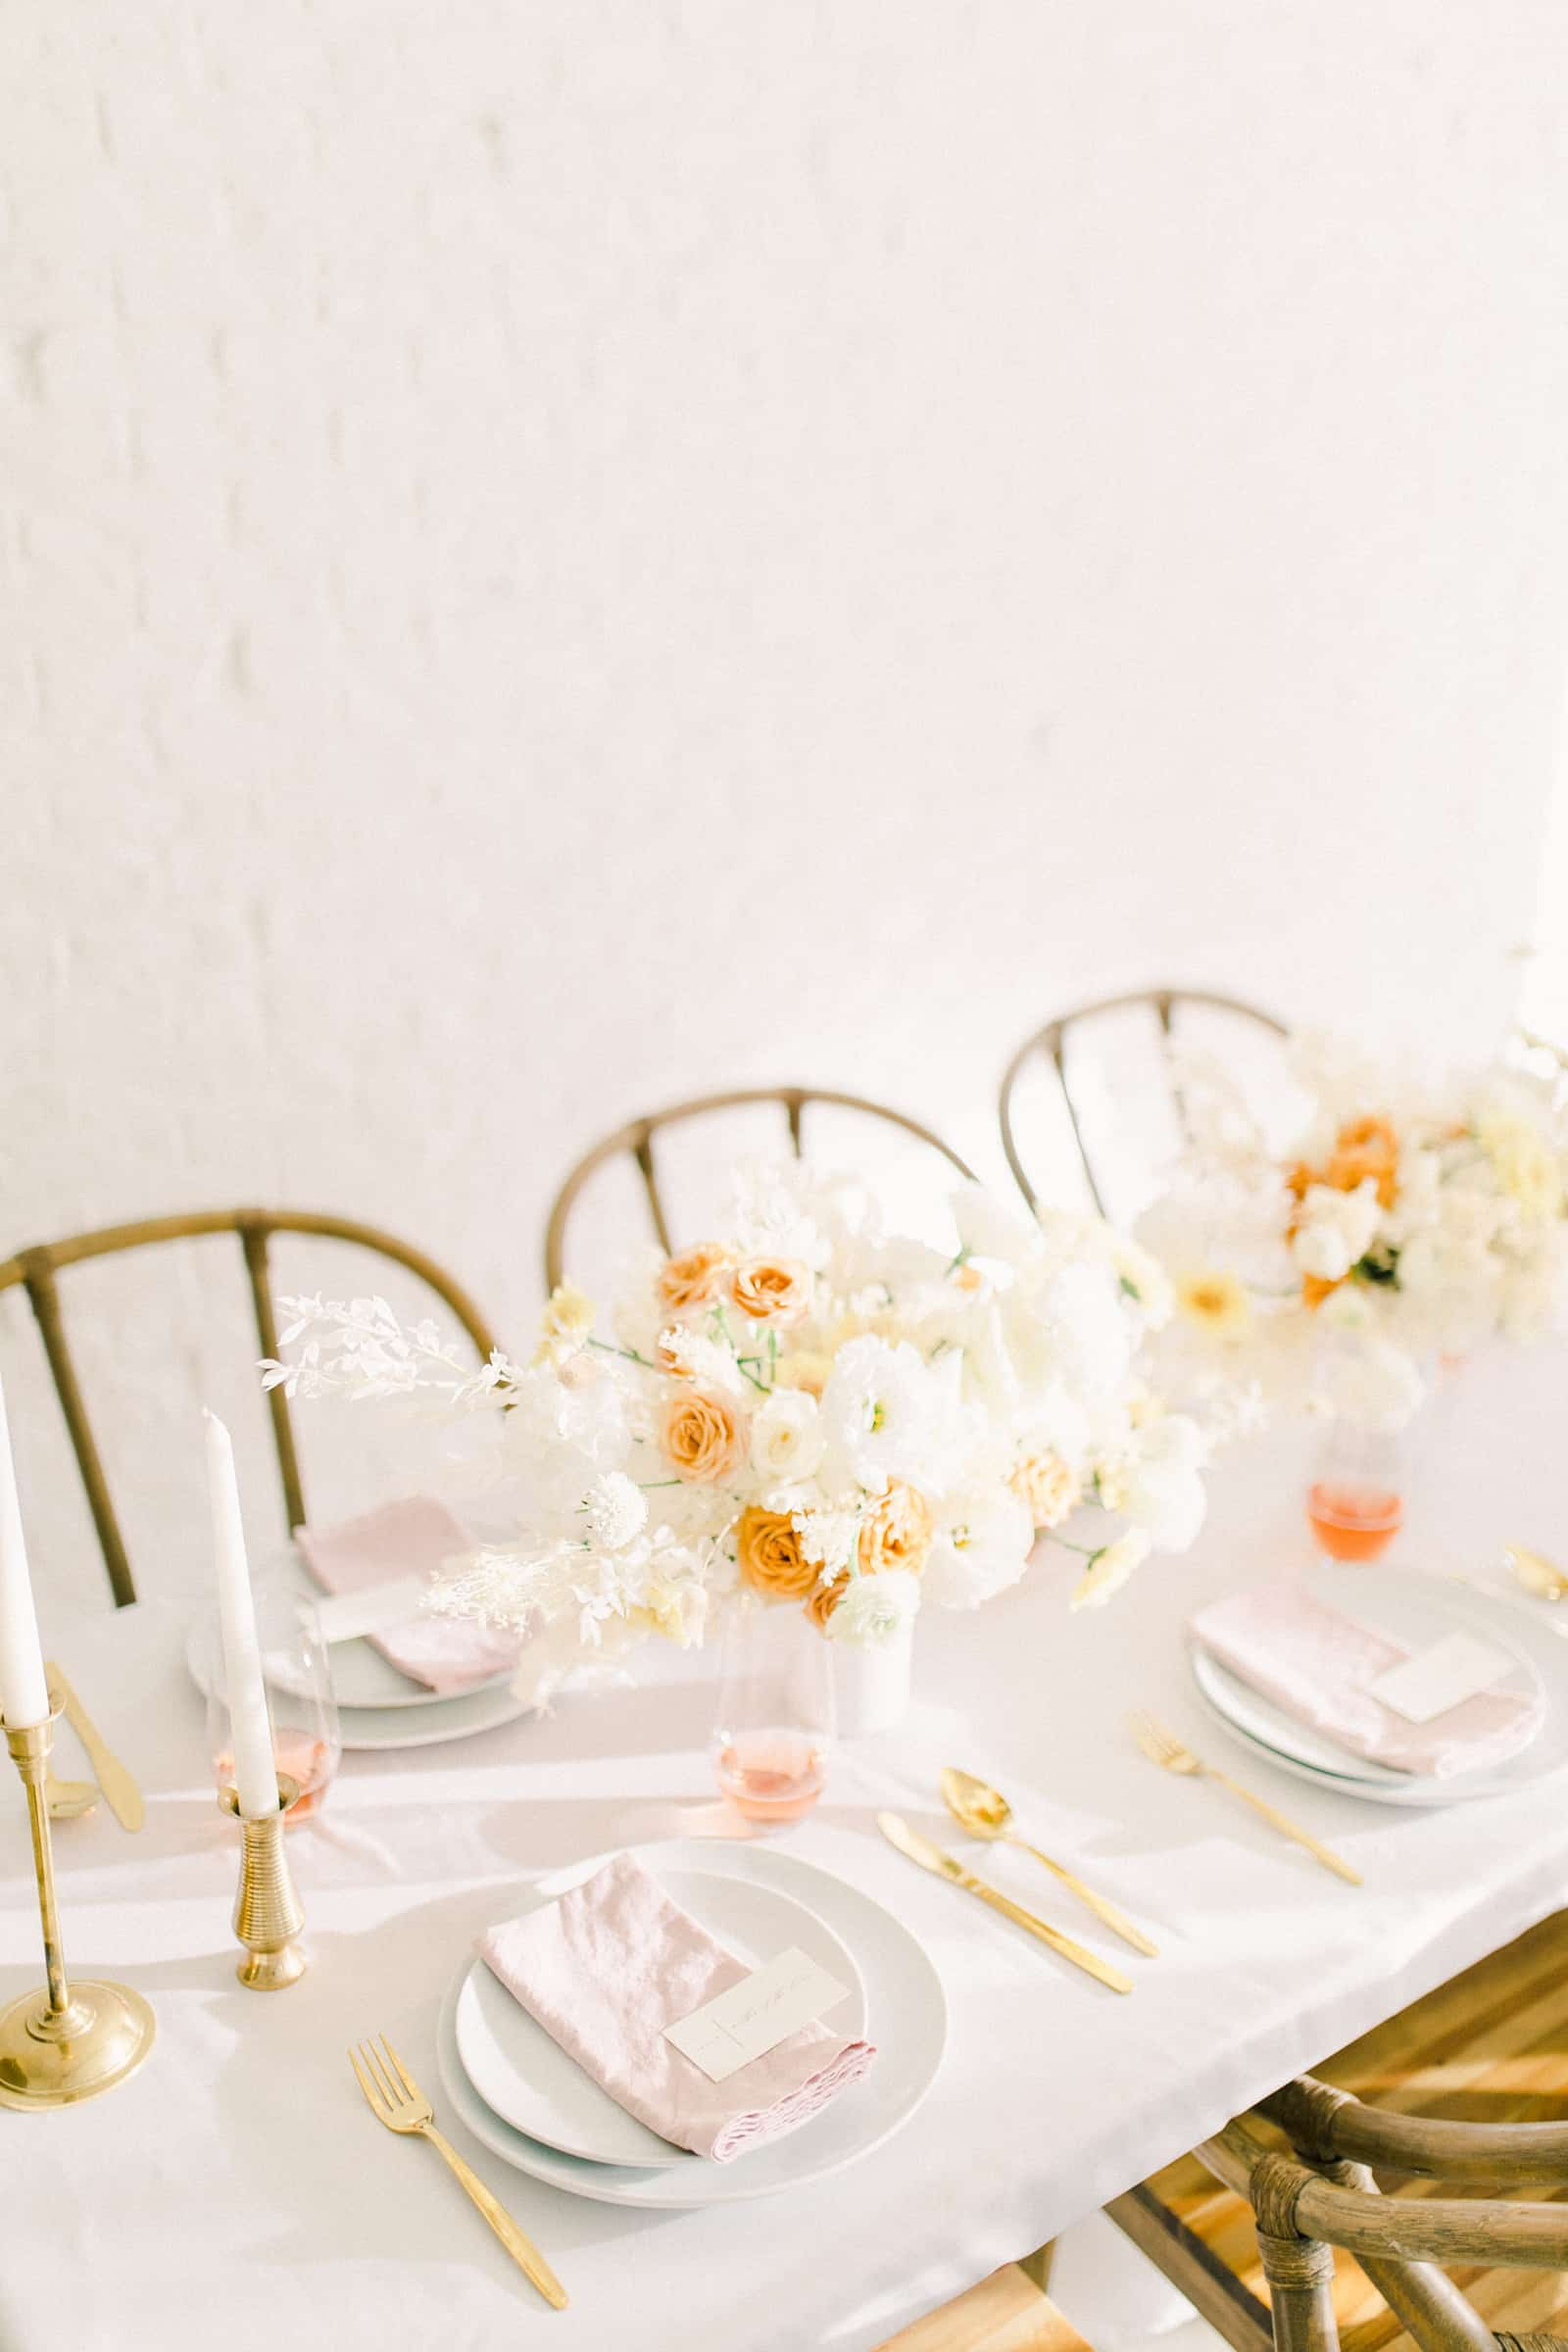 Modern wedding table with white and orange rust colors, white flowers tablescape